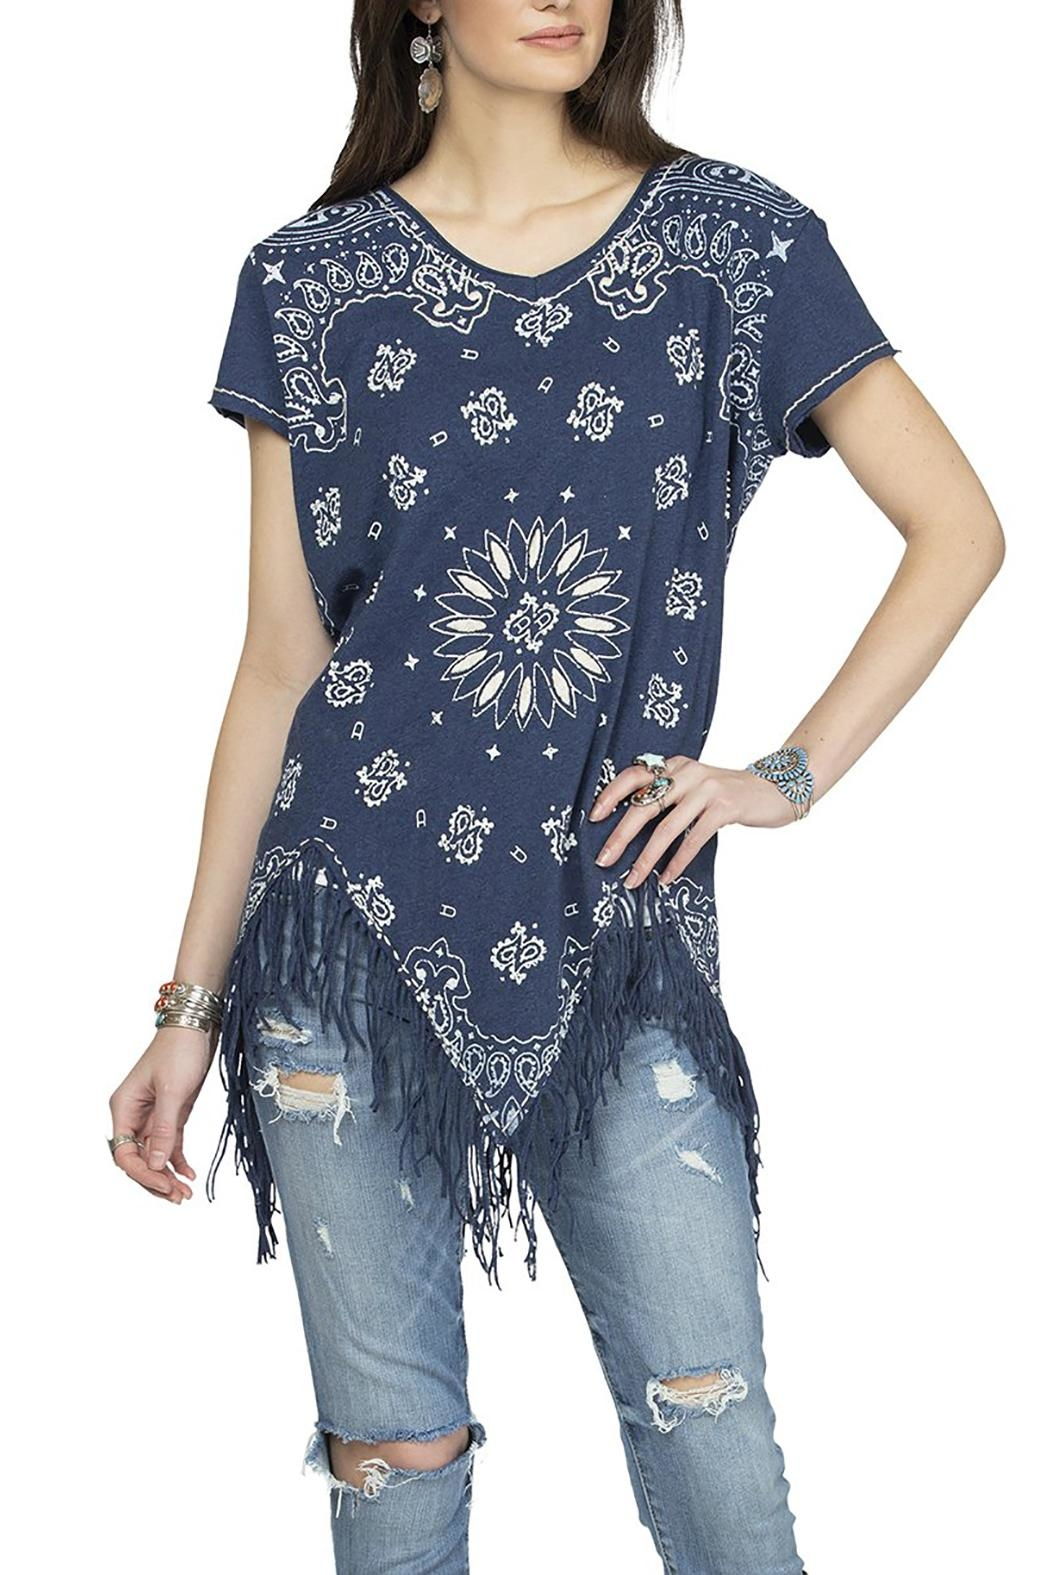 Double D Ranchwear July Bandana Top - Main Image